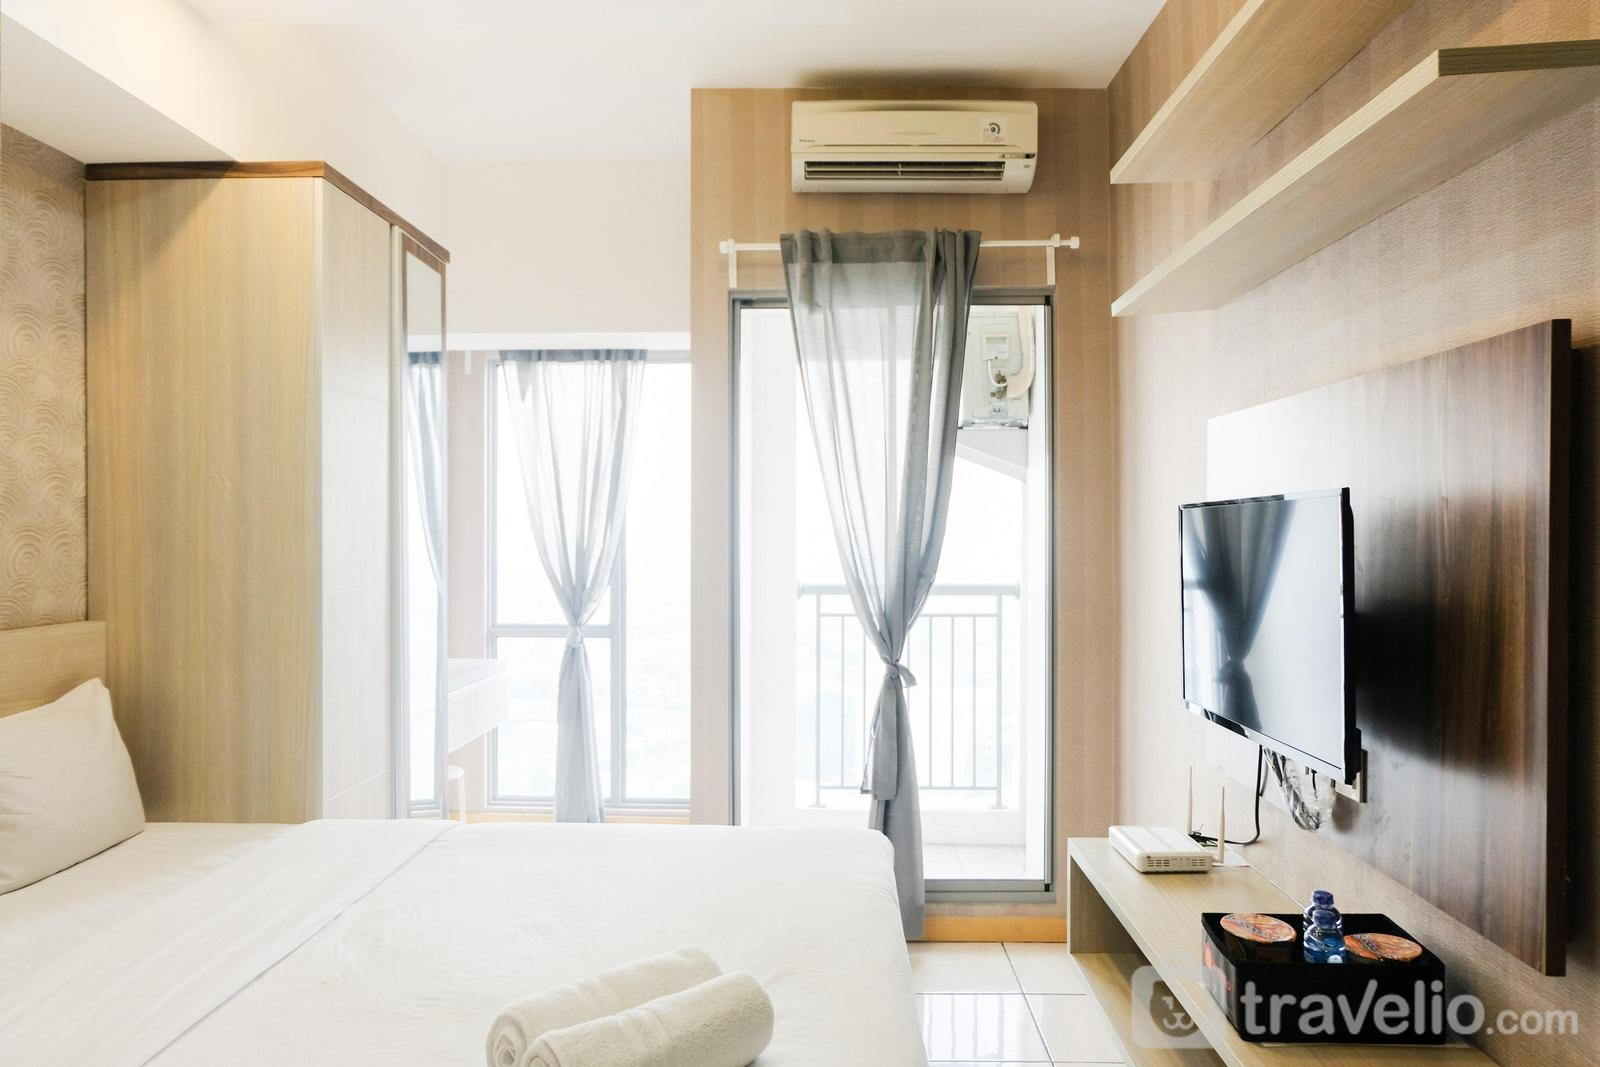 M Town Residence - Homey Studio Apartment at M-Town Residence near Summarecon Mall Serpong By Travelio